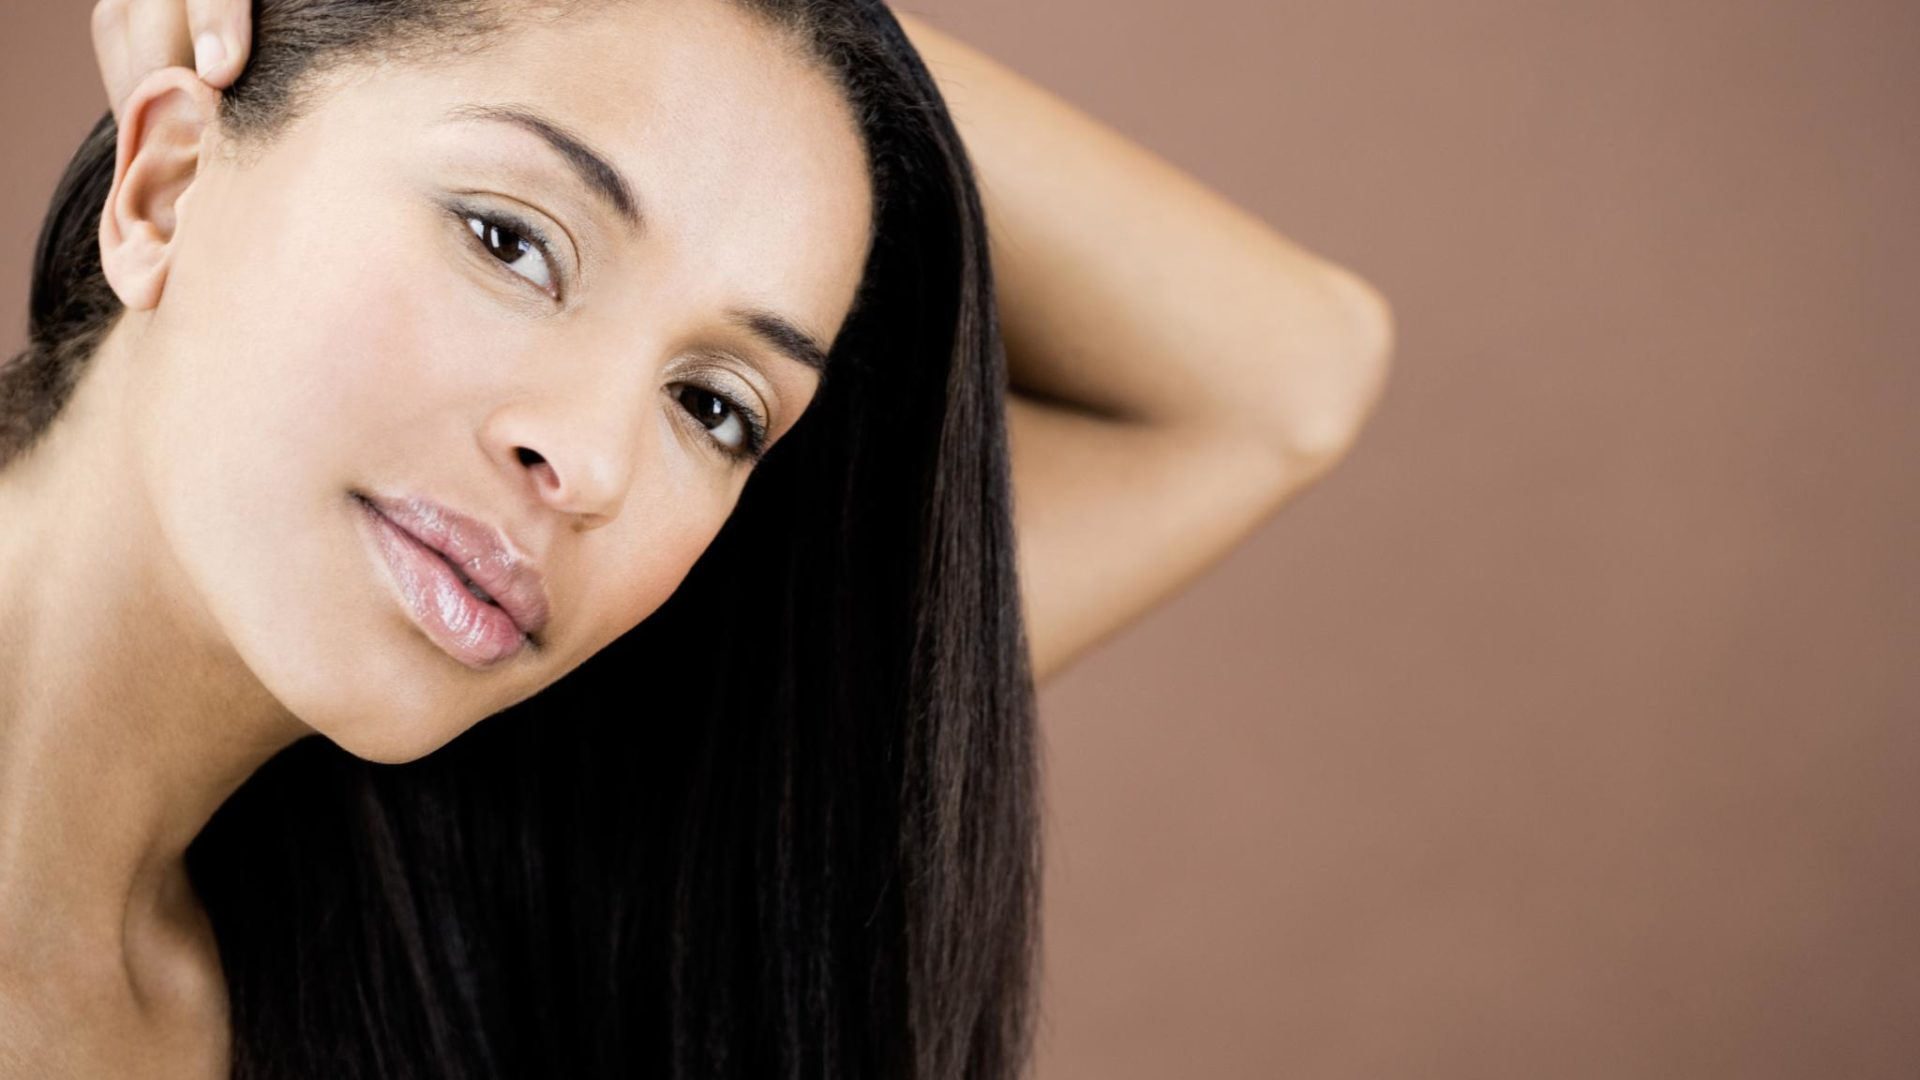 Dry Shampoo for Black Girls? Yes, That's a Thing.